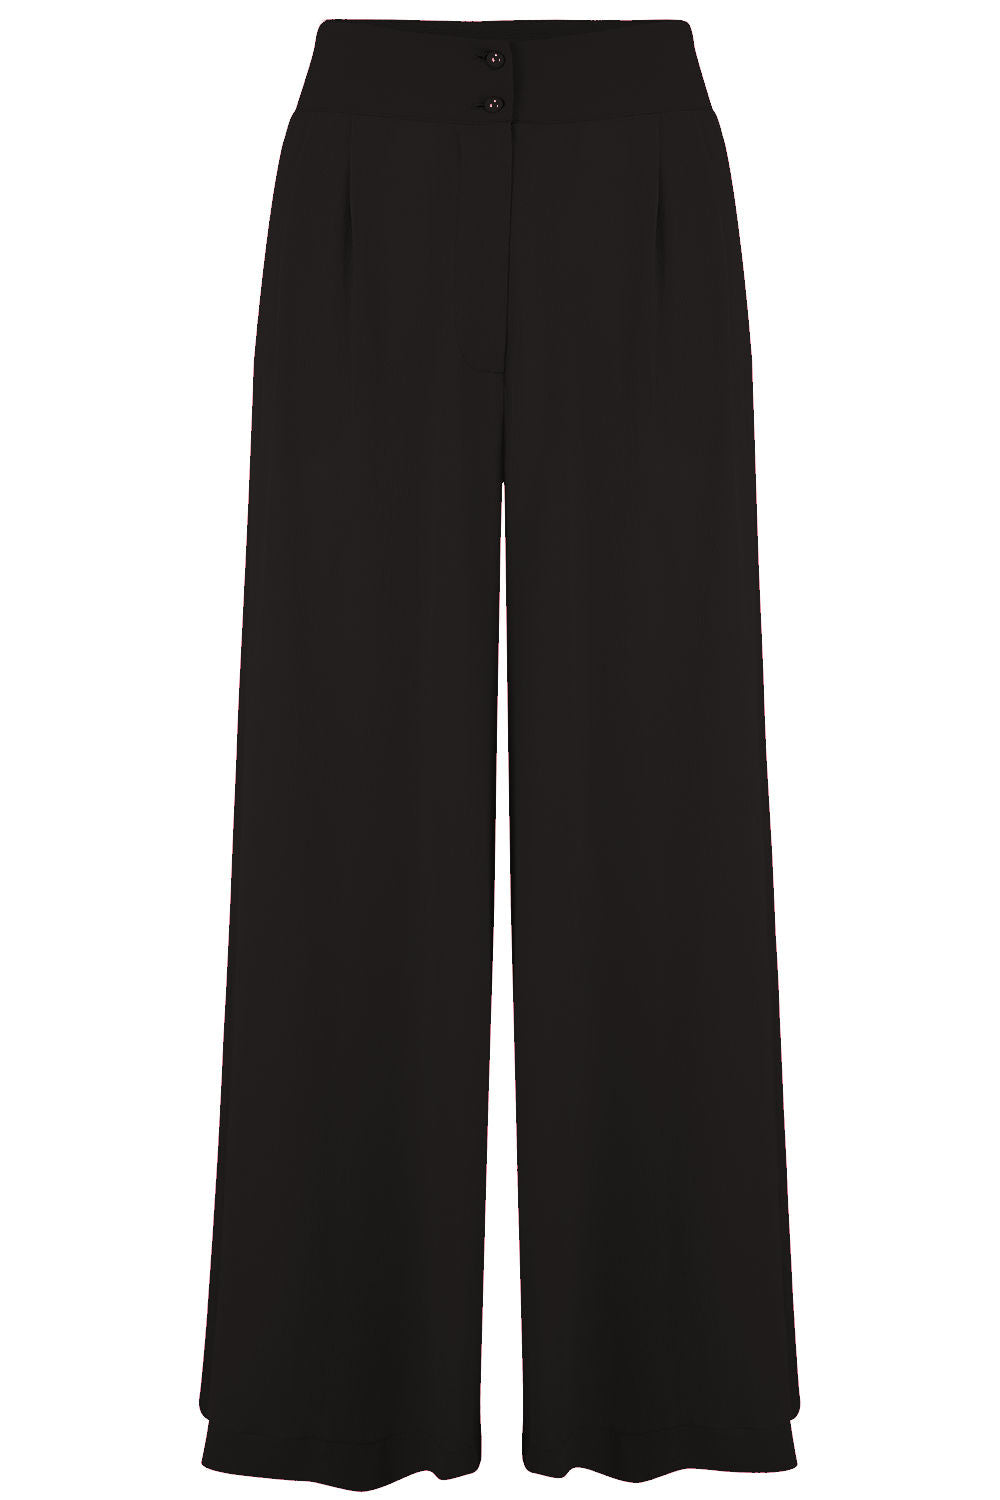 Vintage Wide Leg Pants & Beach Pajamas History The Sophia Plazzo Wide Leg Trousers in Black Easy To Wear Vintage Inspired Style £39.00 AT vintagedancer.com